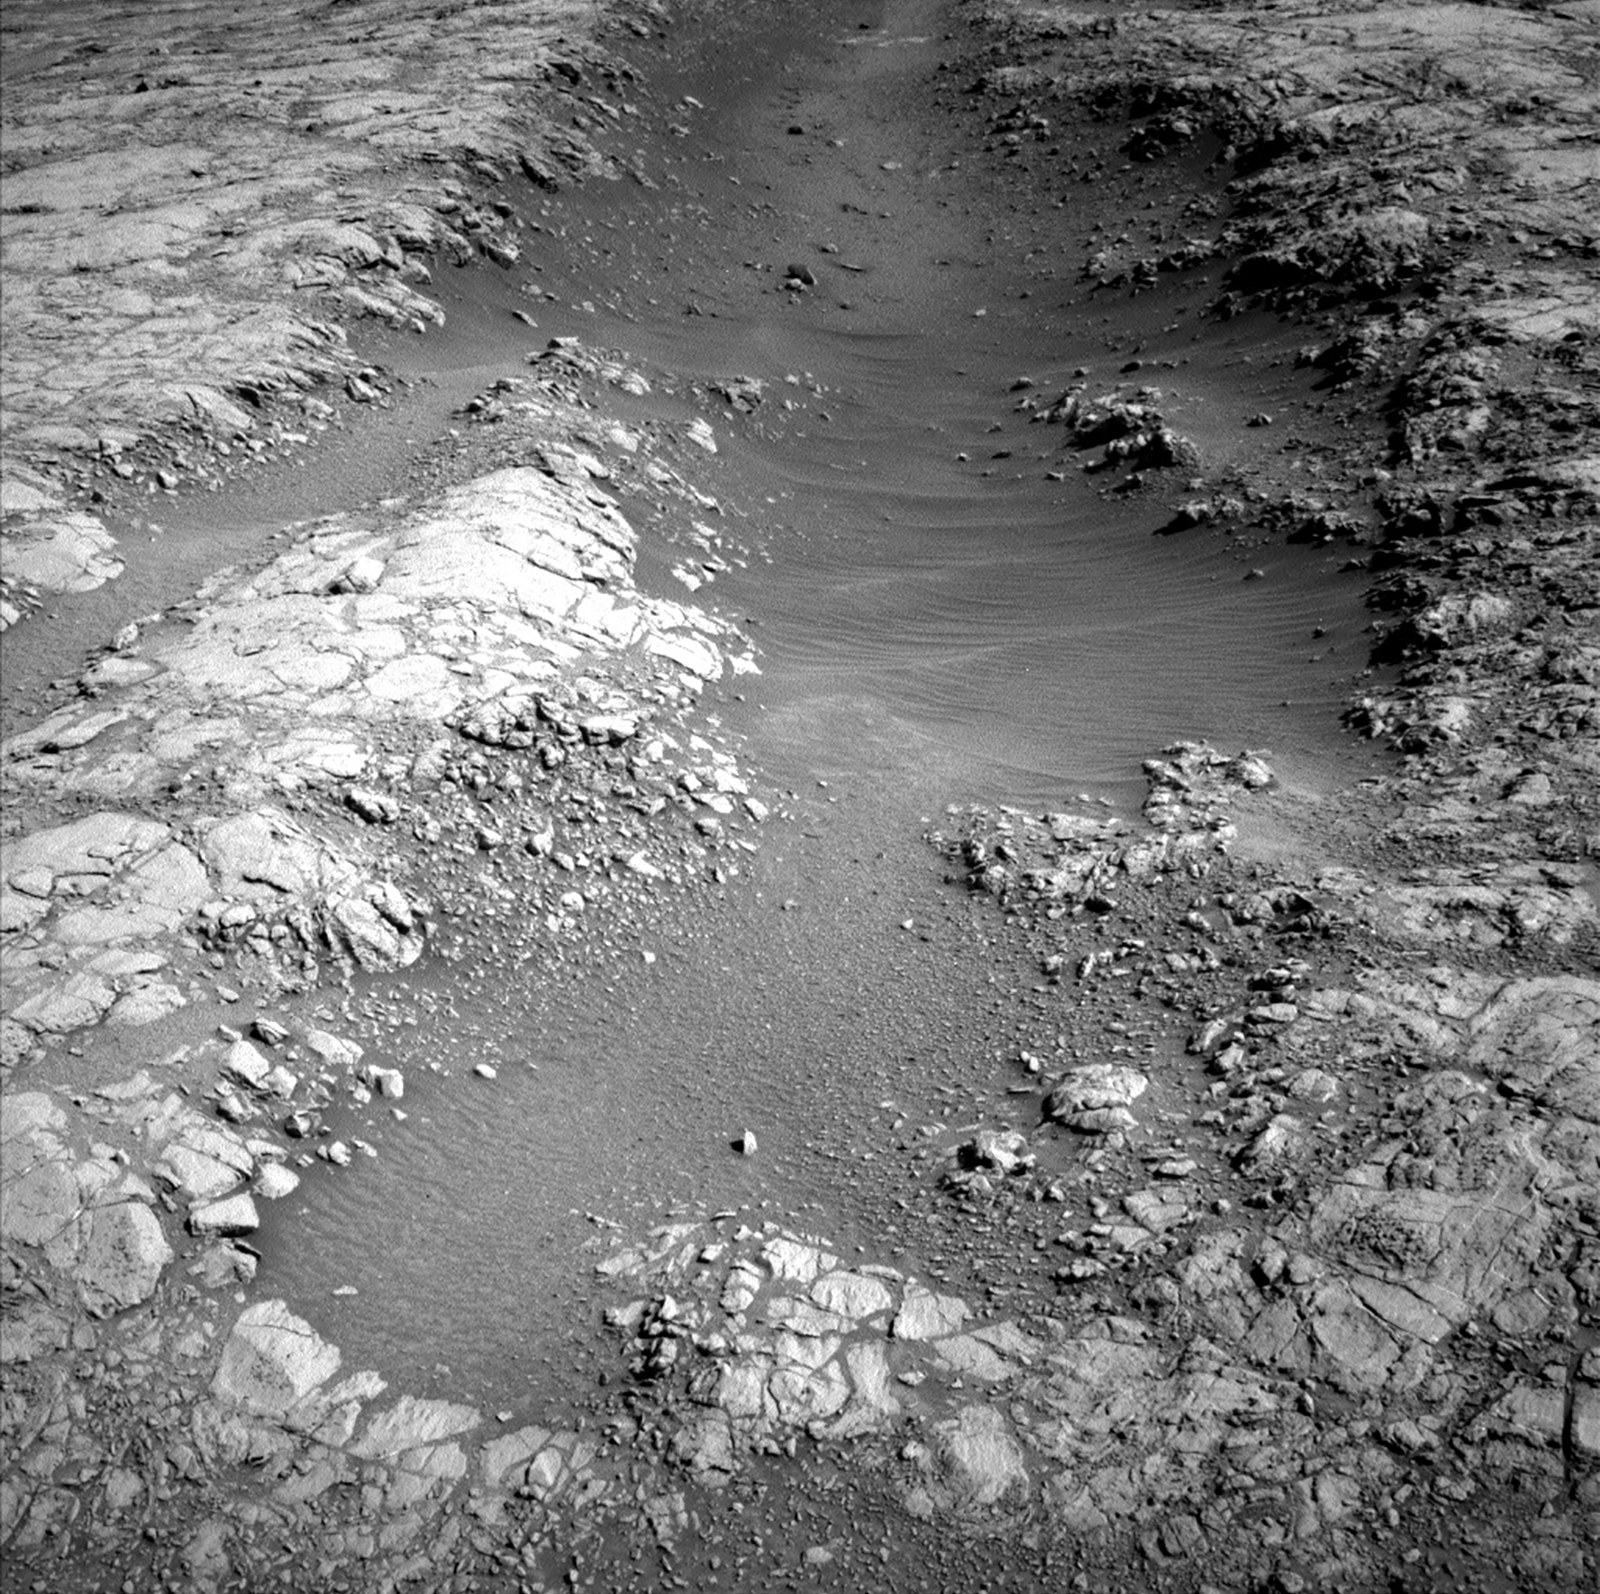 Curiosity rover overcomes temporary freeze after 'attitude adjustment'